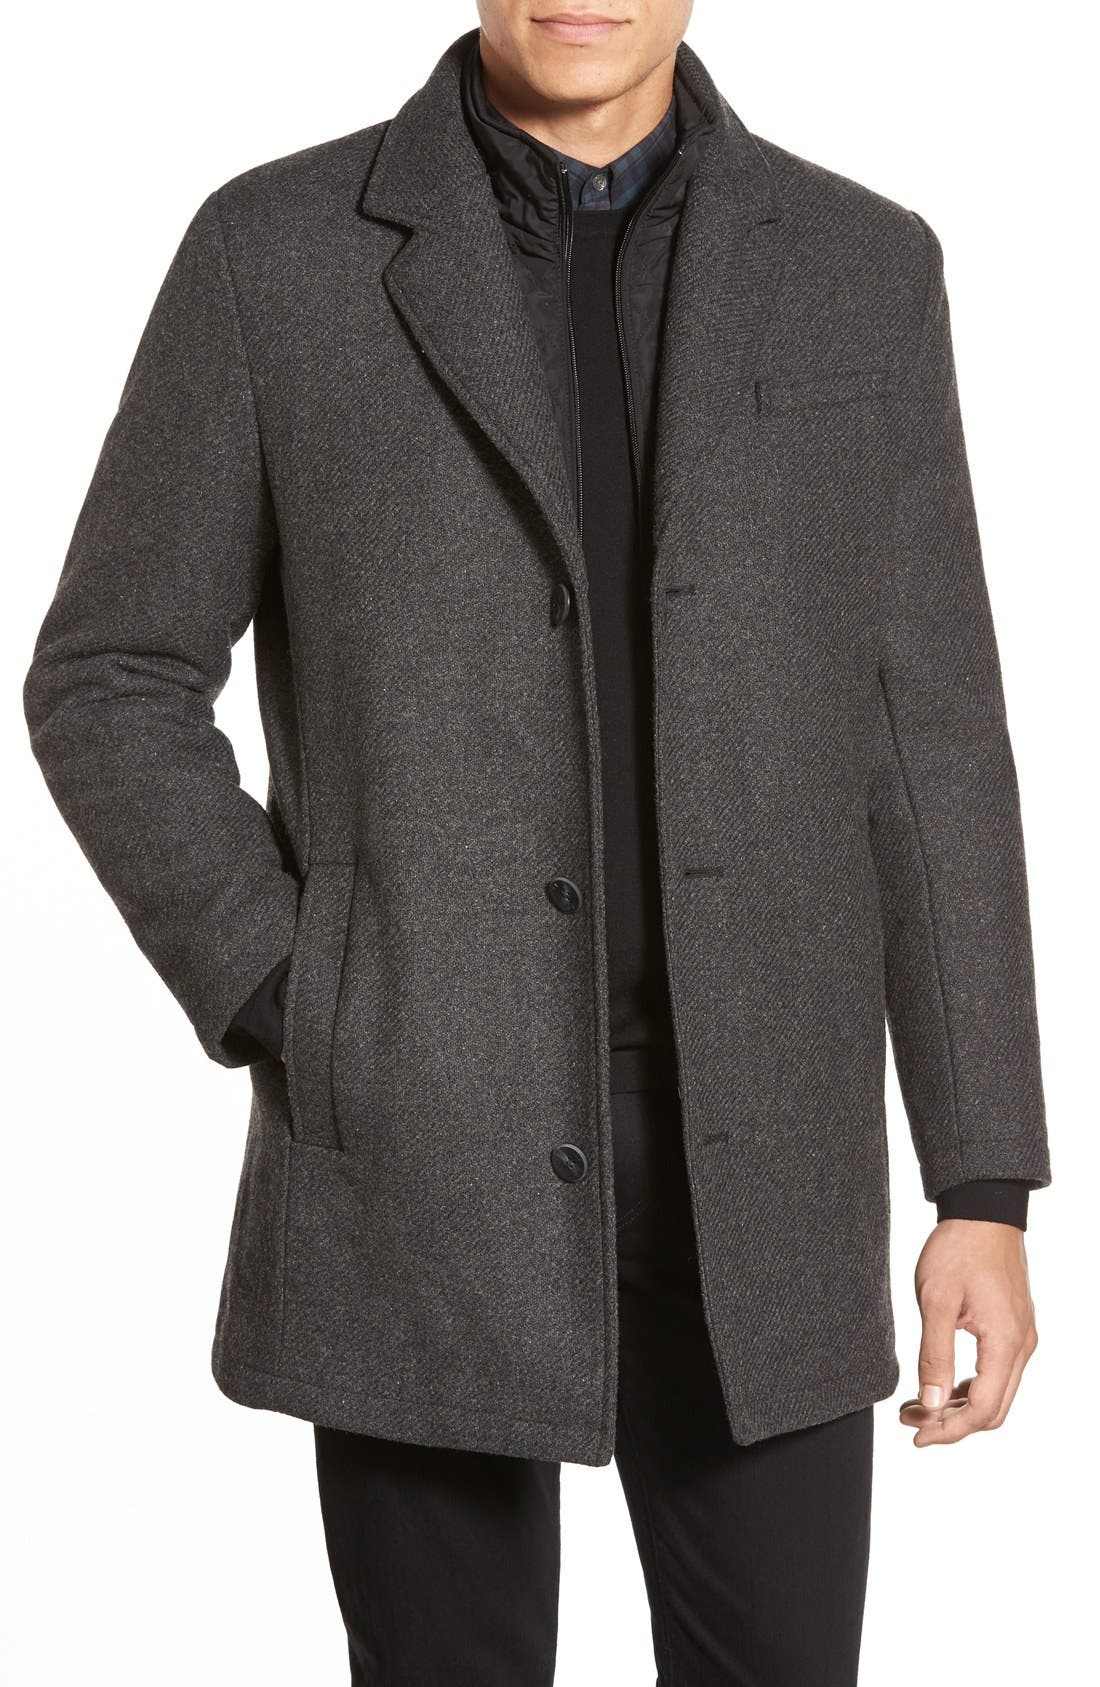 Alternate Image 1 Selected - Vince Camuto Car Coat with Removable Bib